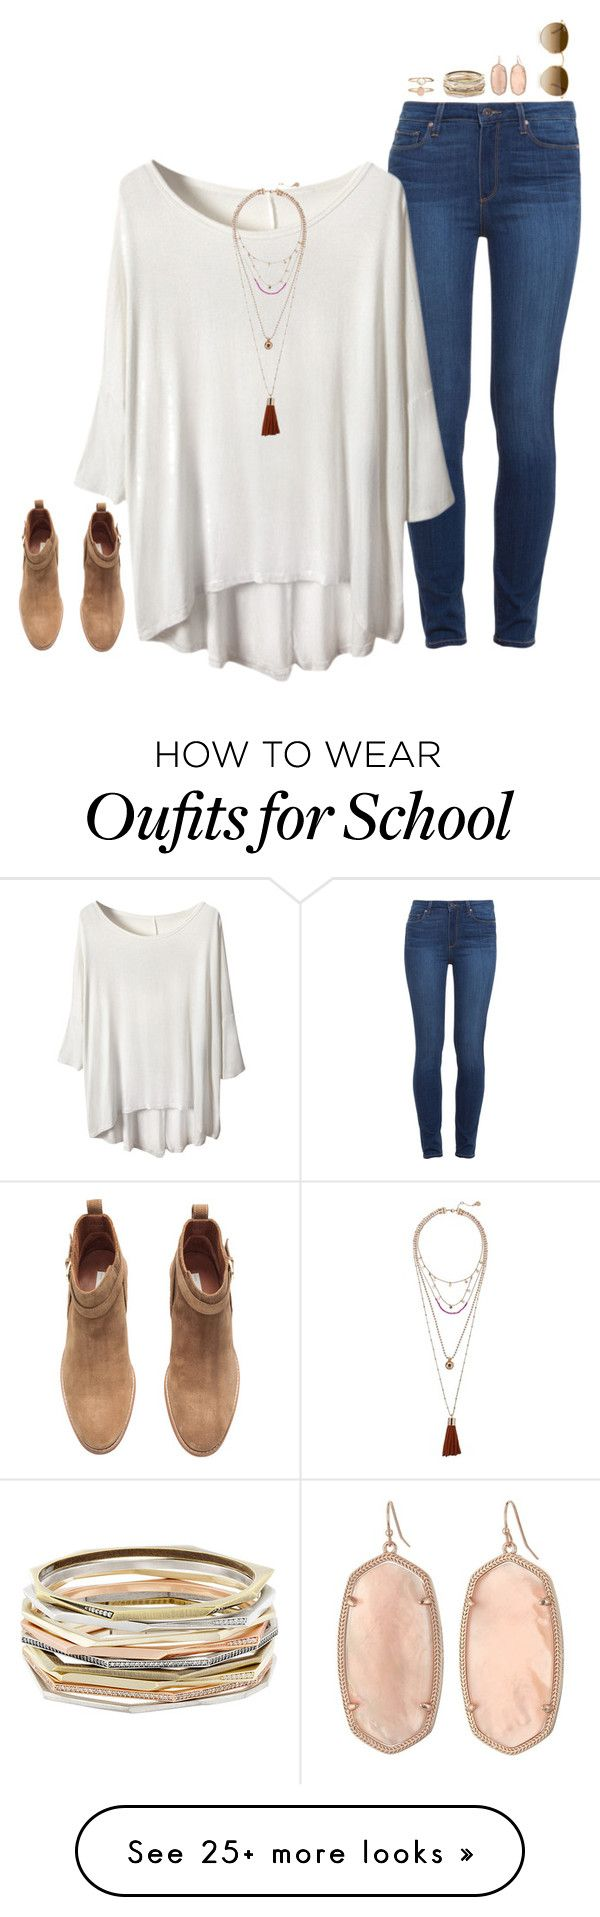 """AHH SCHOOL IN 2 DAYS!!!!!!!!!"" by jazmintorres1 on Polyvore featuring Paige Denim, H&M, Vince Camuto, Accessorize, Kendra Scott and Ray-Ban"